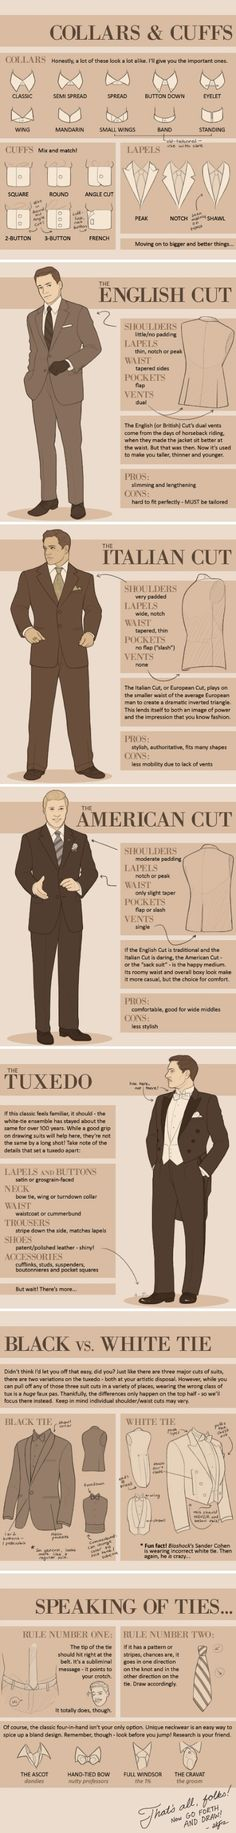 Suit a variety of kinds of details; kinds of cuff neckline tie diagrams, uniform control shall reap!